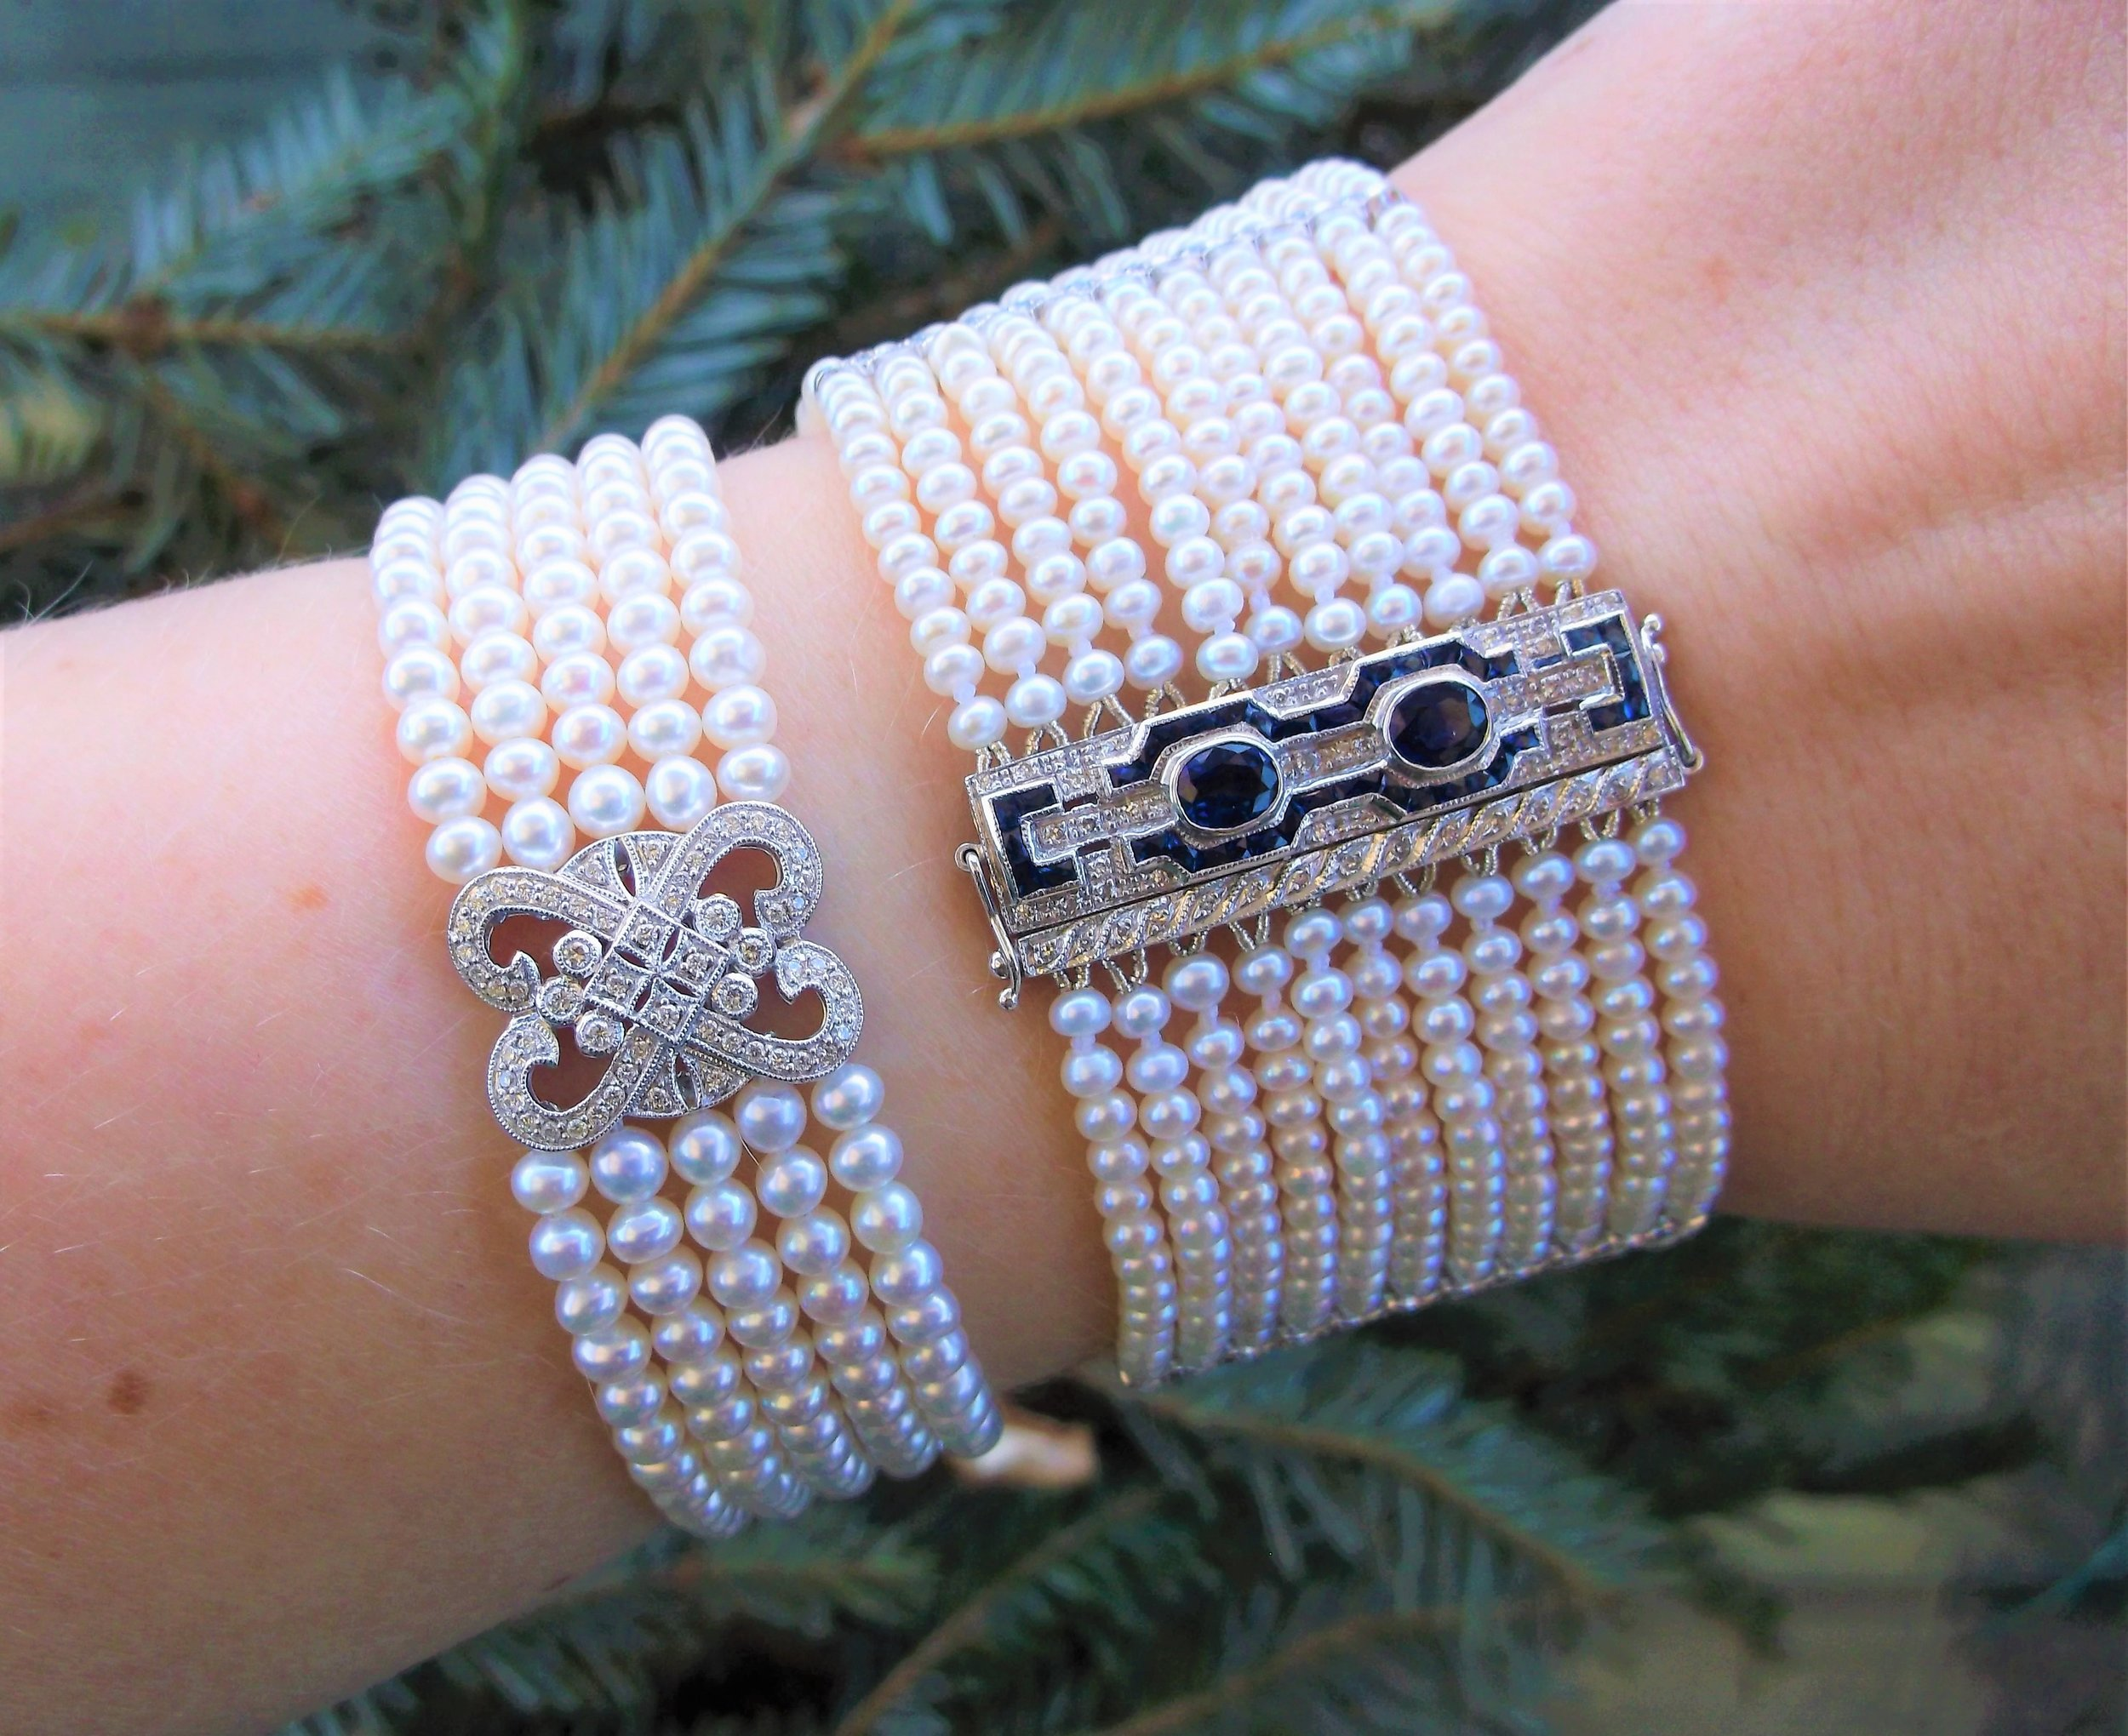 SOLD BOTH - An elegant eleven strand bracelet features a bar clasp set with 0.83 carats total weight in sapphires and 1.25 carats total weight in diamonds and a lovely five strand pearl bracelet set with 0.44 carats total weight in diamonds.